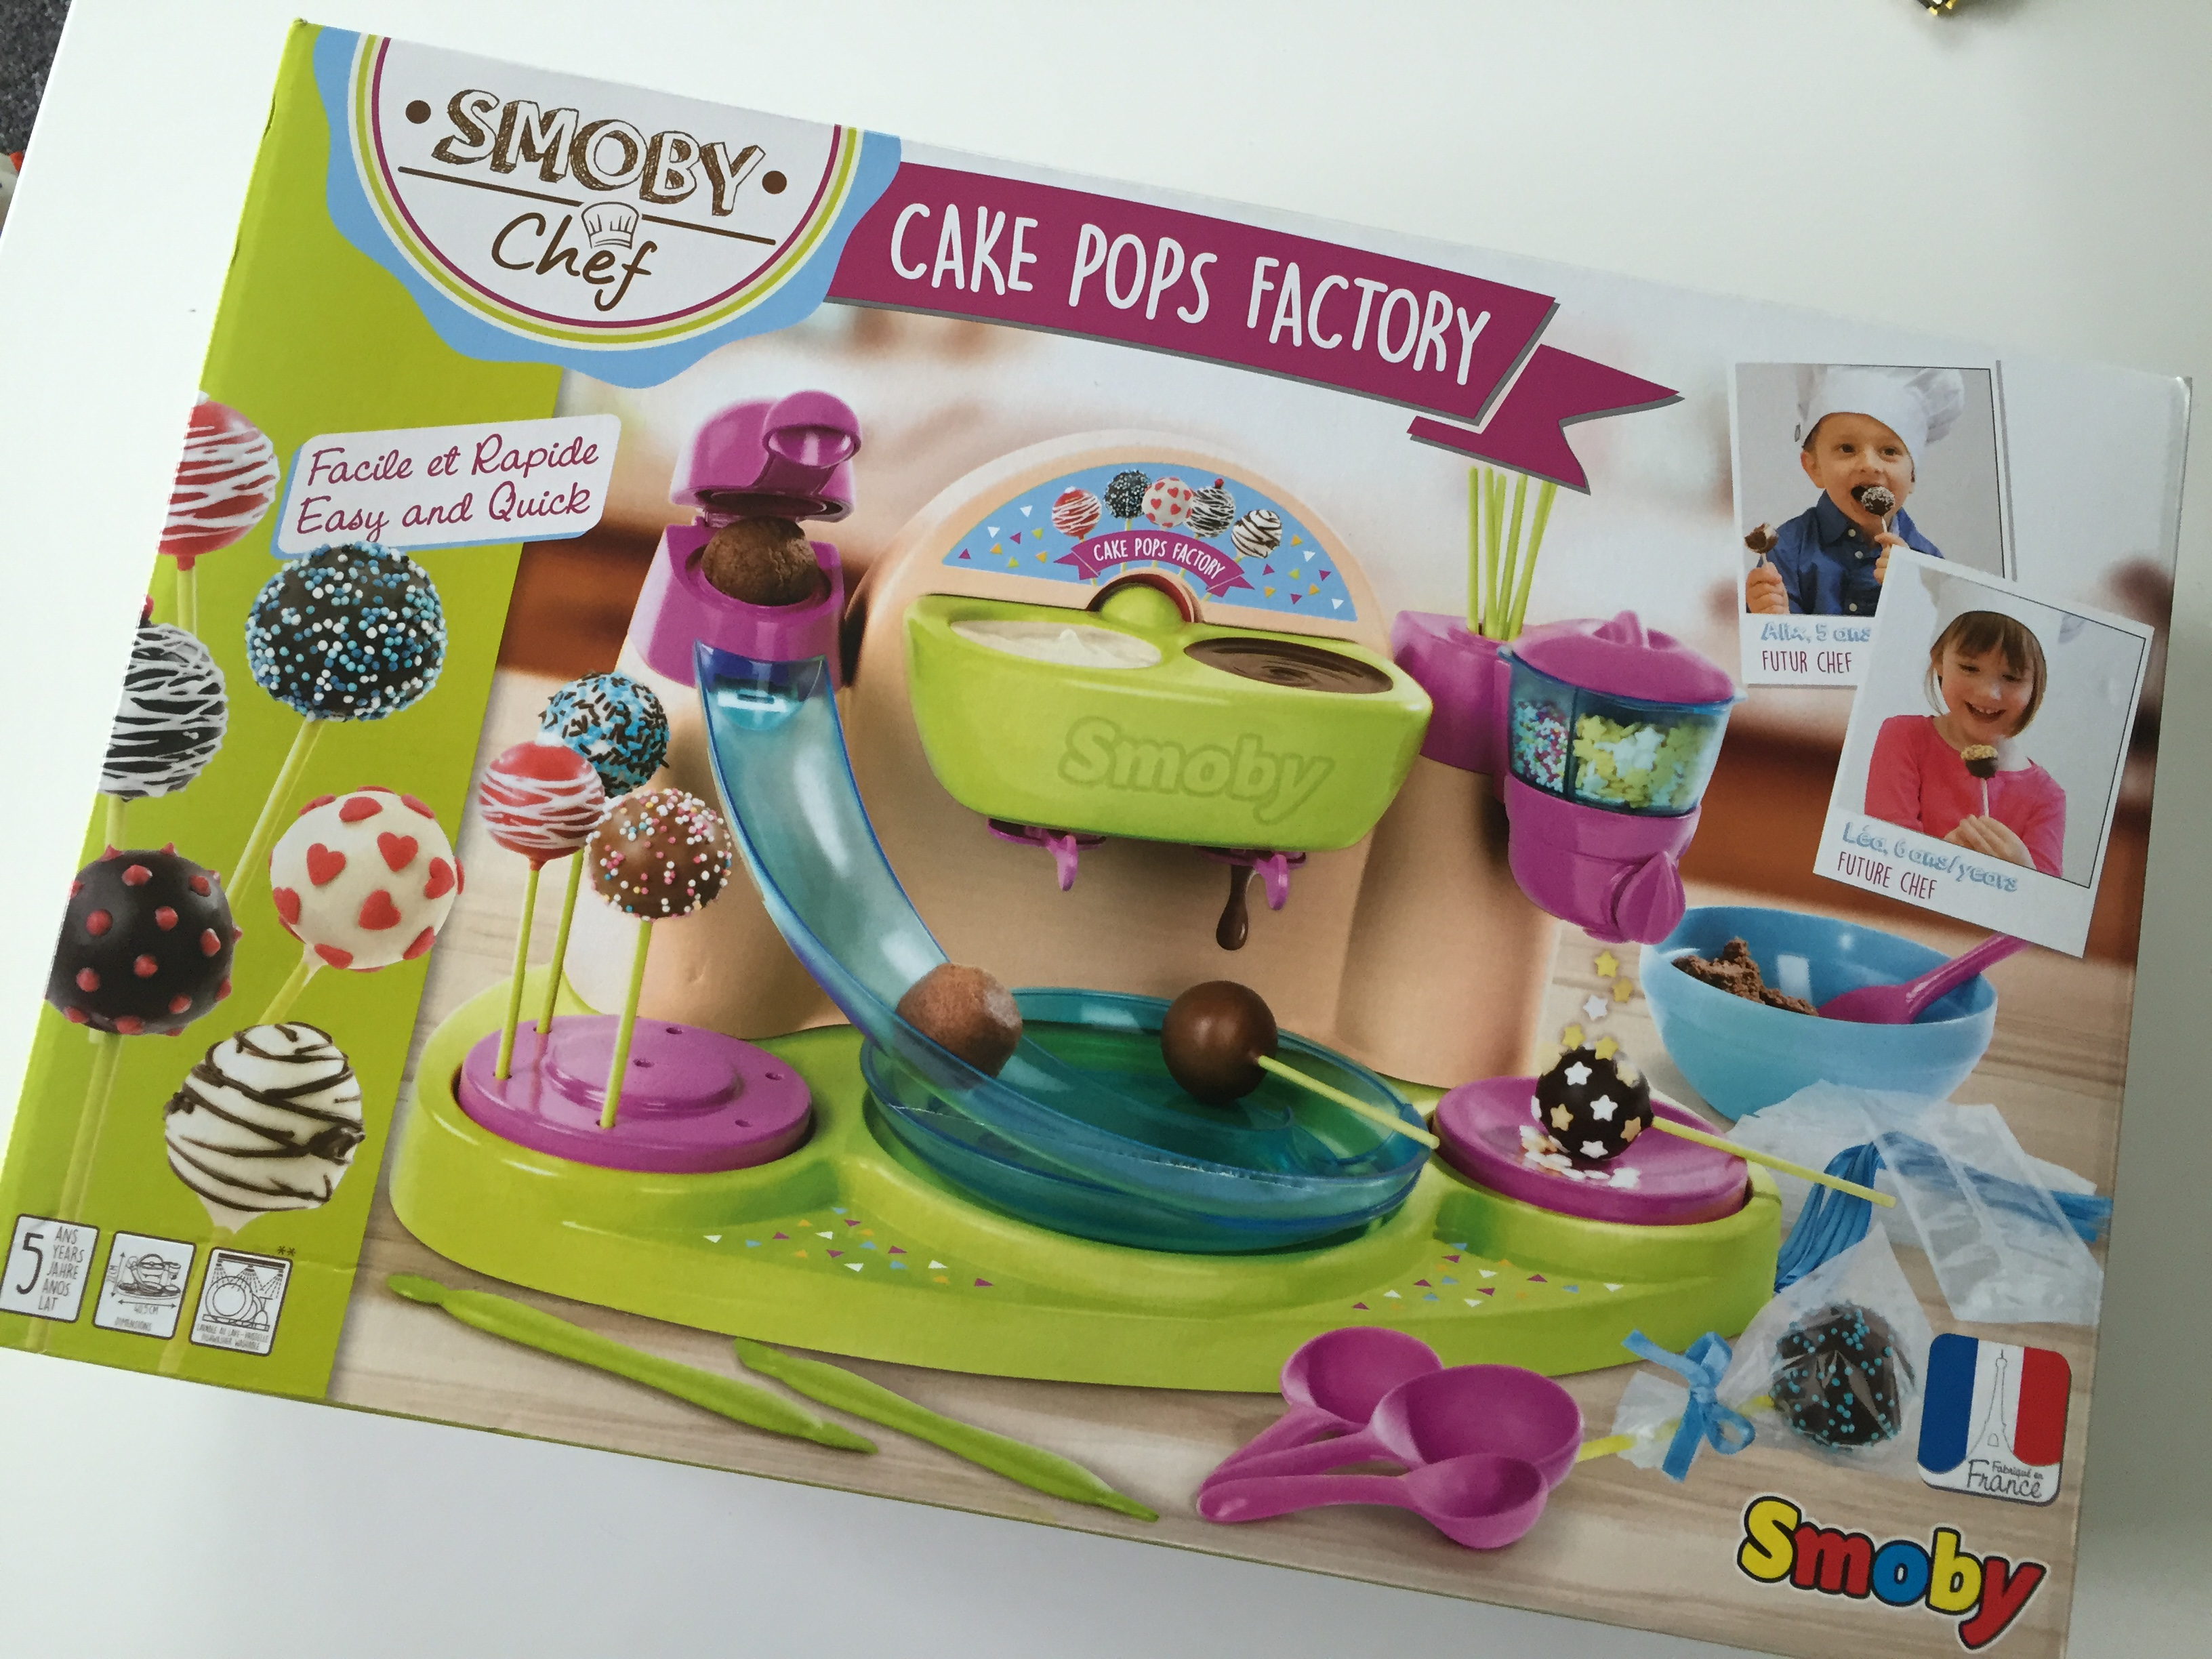 Cake Pops Smoby Chef